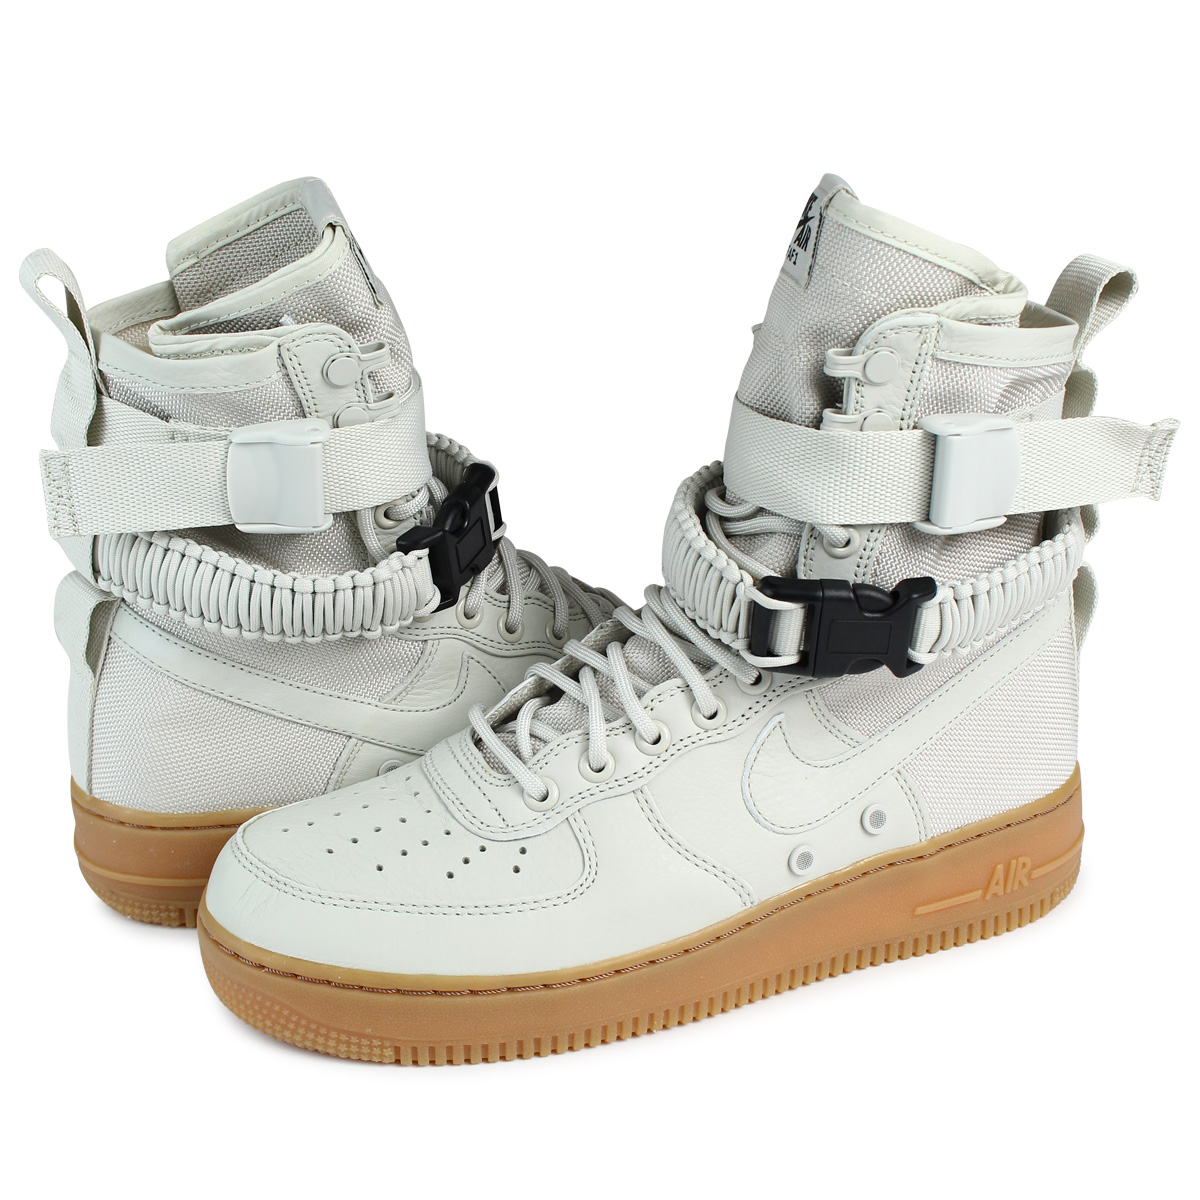 NIKE WMNS SPECIAL FIELD AIR FORCE 1 Nike air force 1 special field sneakers  857,872-004 men's lady's shoes gray [11/10 Shinnyu load] [1711]